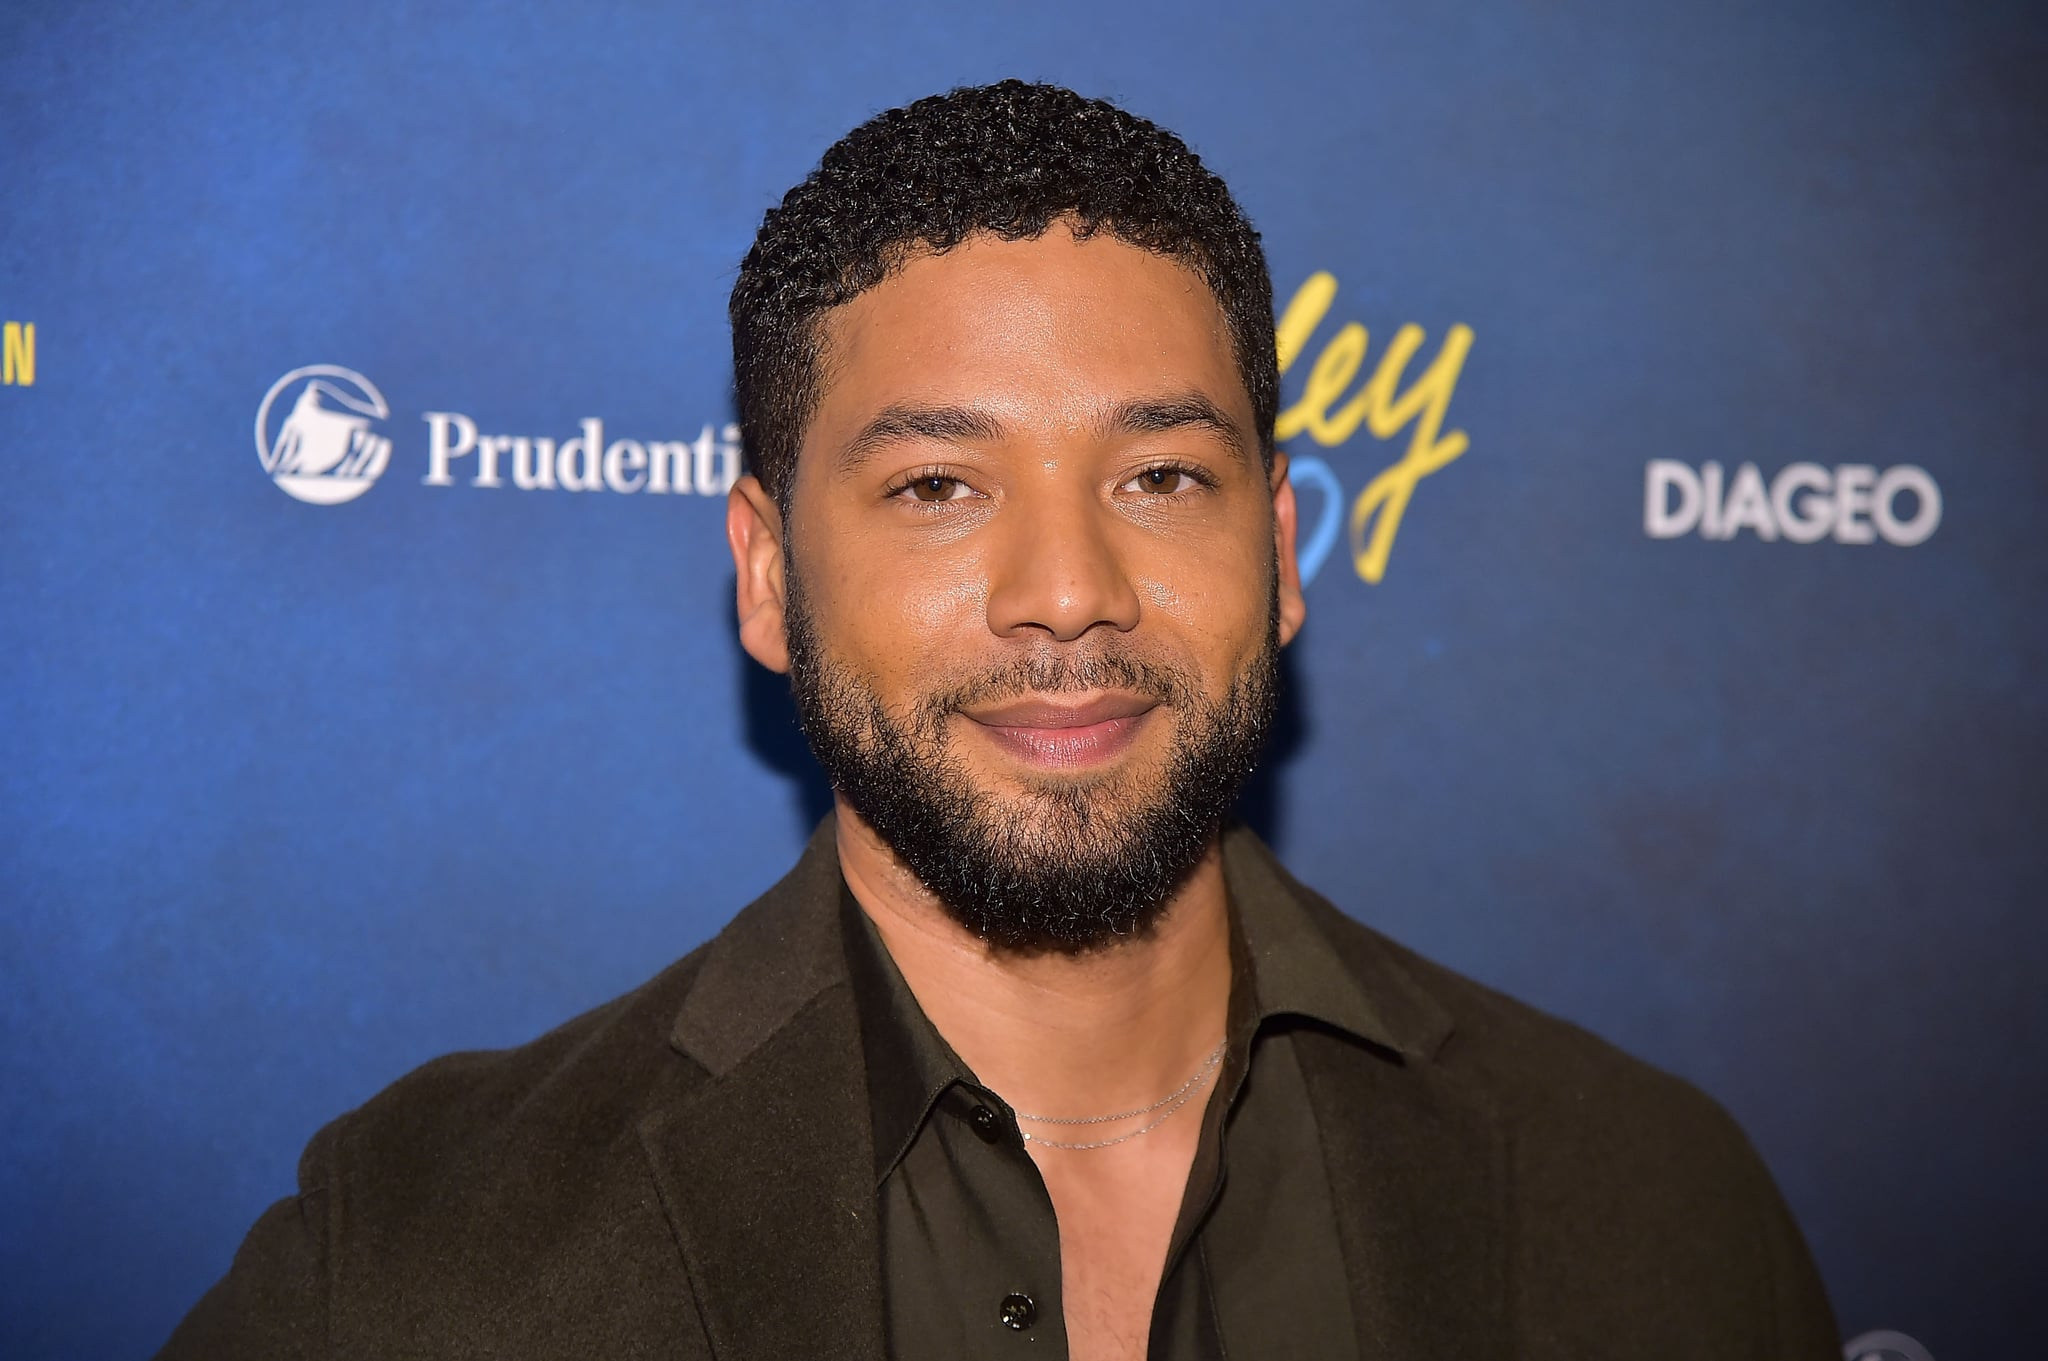 NEW YORK, NY - NOVEMBER 28:  Jussie Smollett attends the Alvin Ailey American Dance Theatre's 60th Anniversary Opening Night Gala Benefit at New York City Centre on November 28, 2018 in New York City.  (Photo by Theo Wargo/Getty Images)